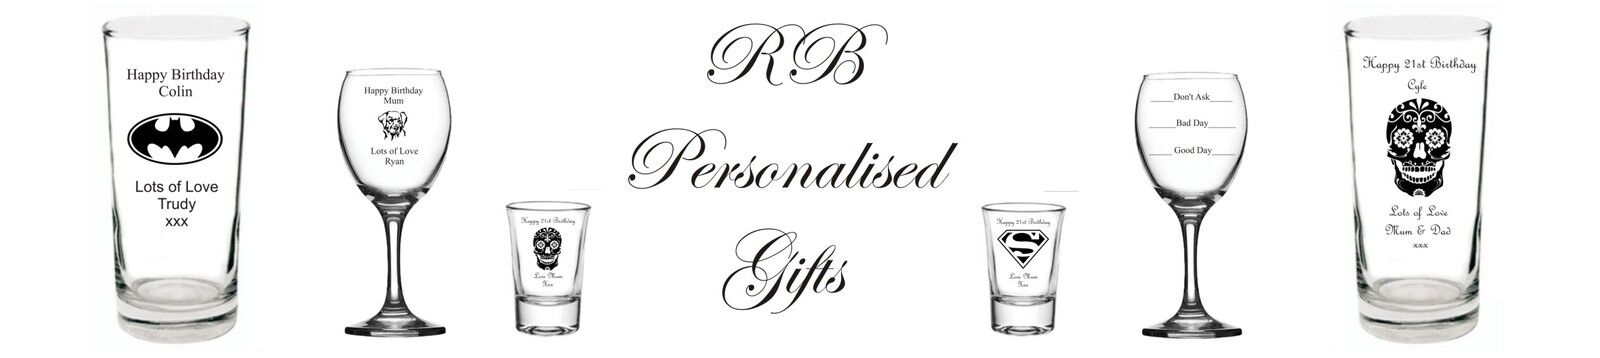 RB Personalised Gifts